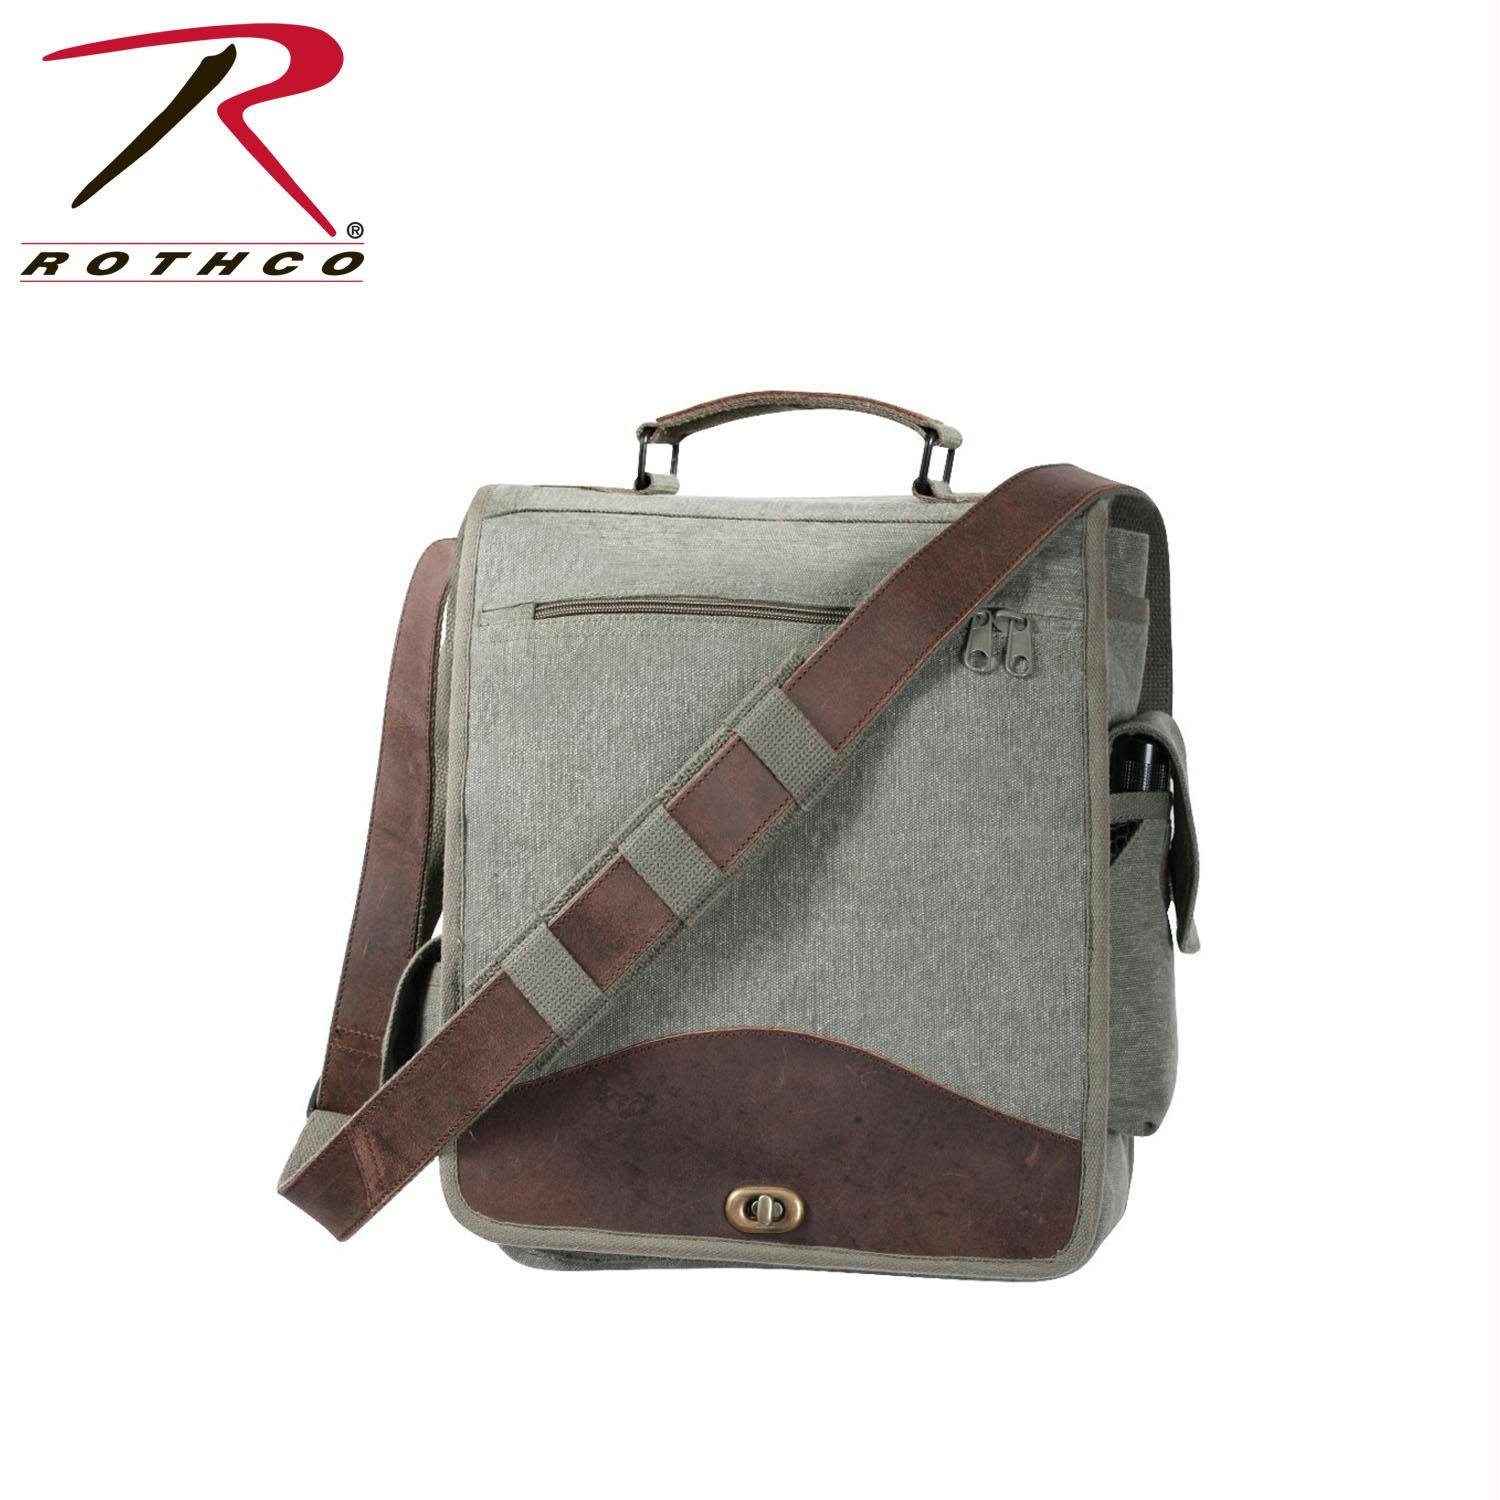 Rothco Vintage M-51 Engineers Bag - Olive Drab